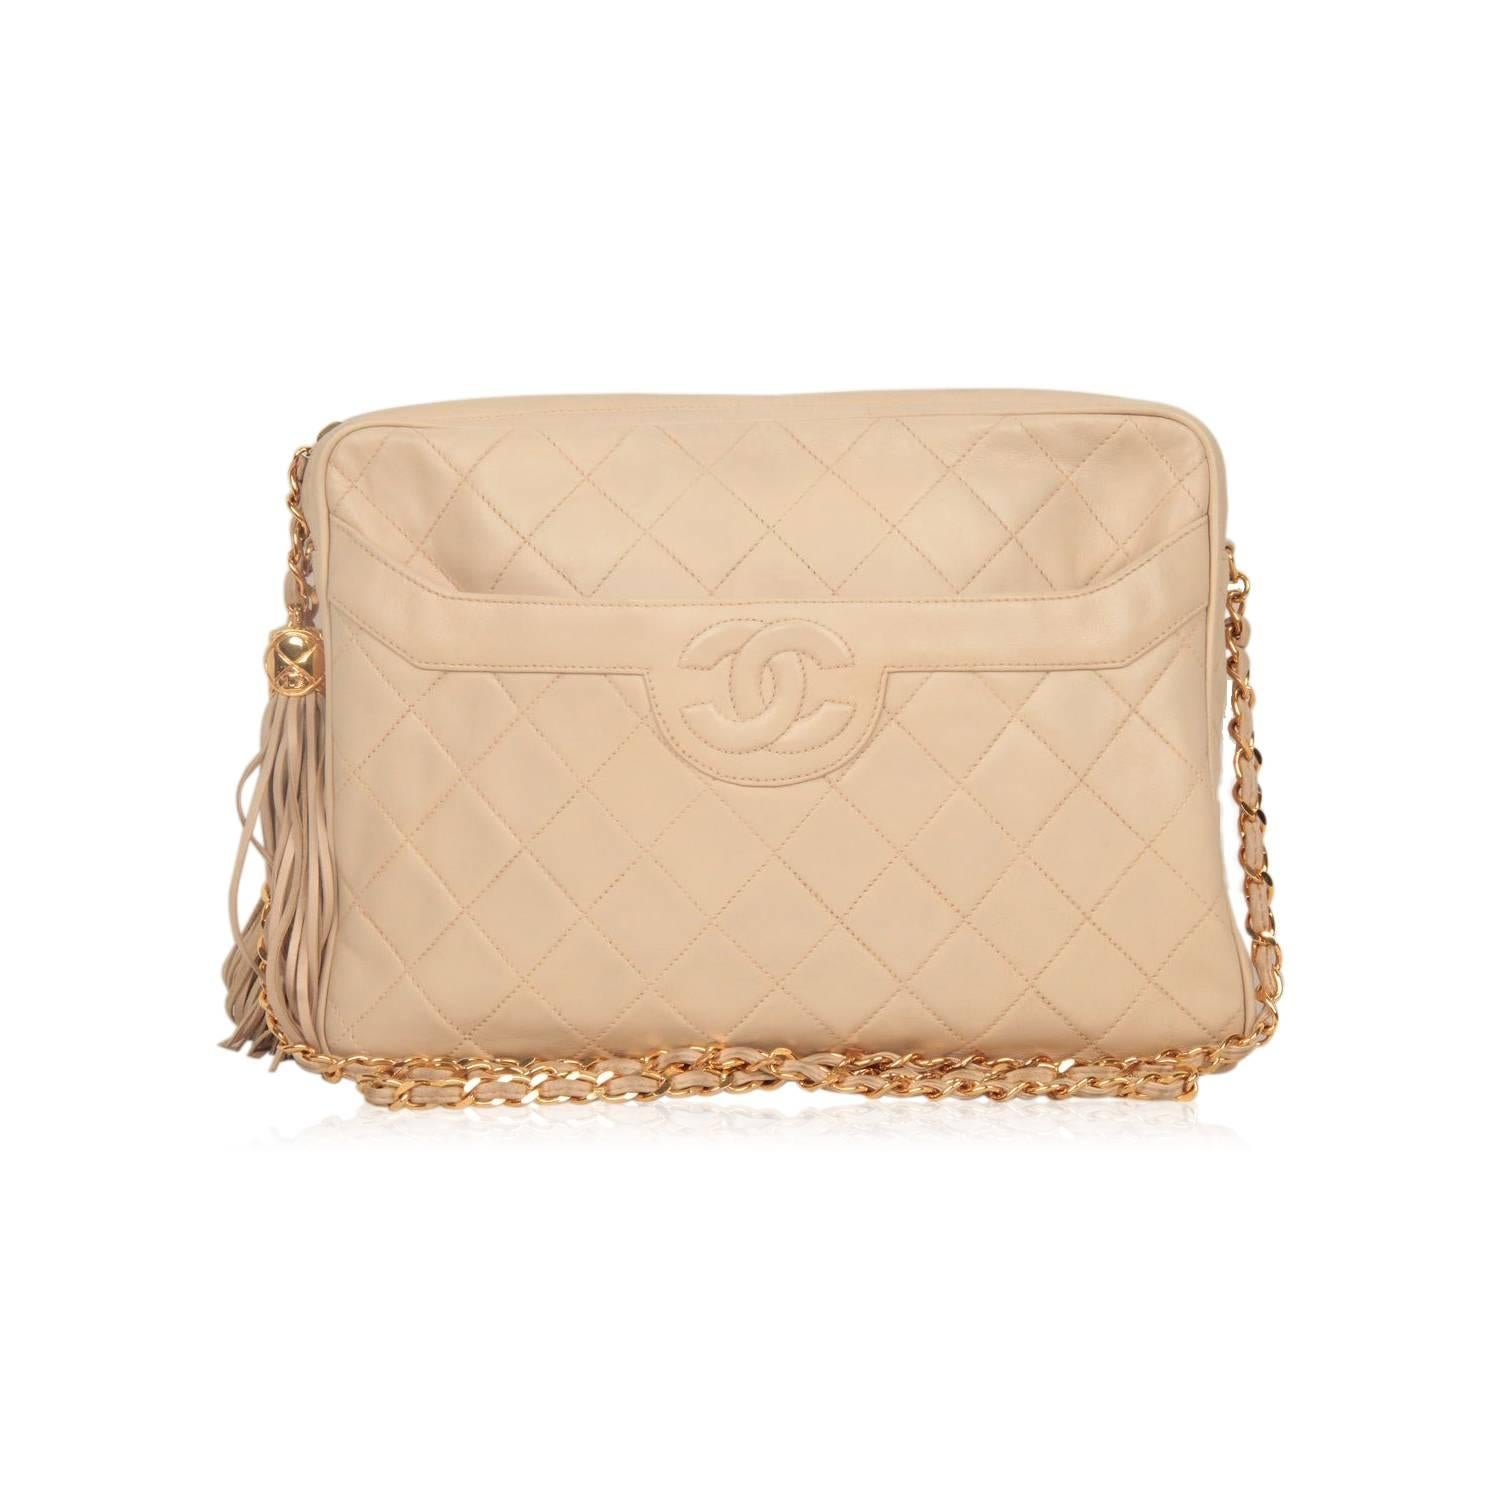 buy flap leather bargain quilted luxury handbags mini bag quilt multichain black product my chanel online